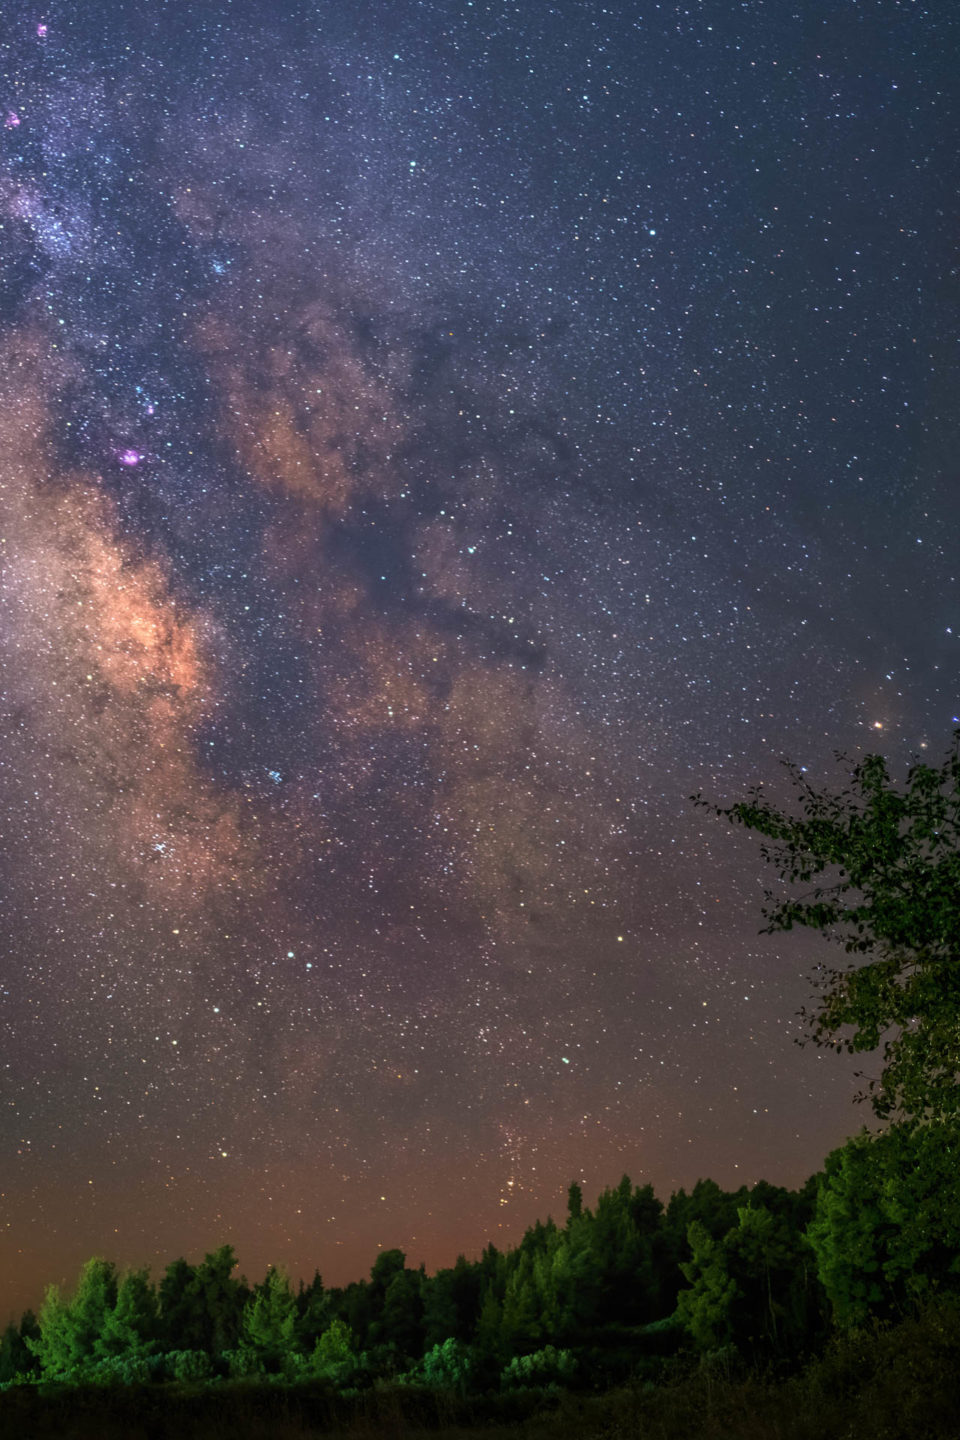 Milky Way Over A Forest